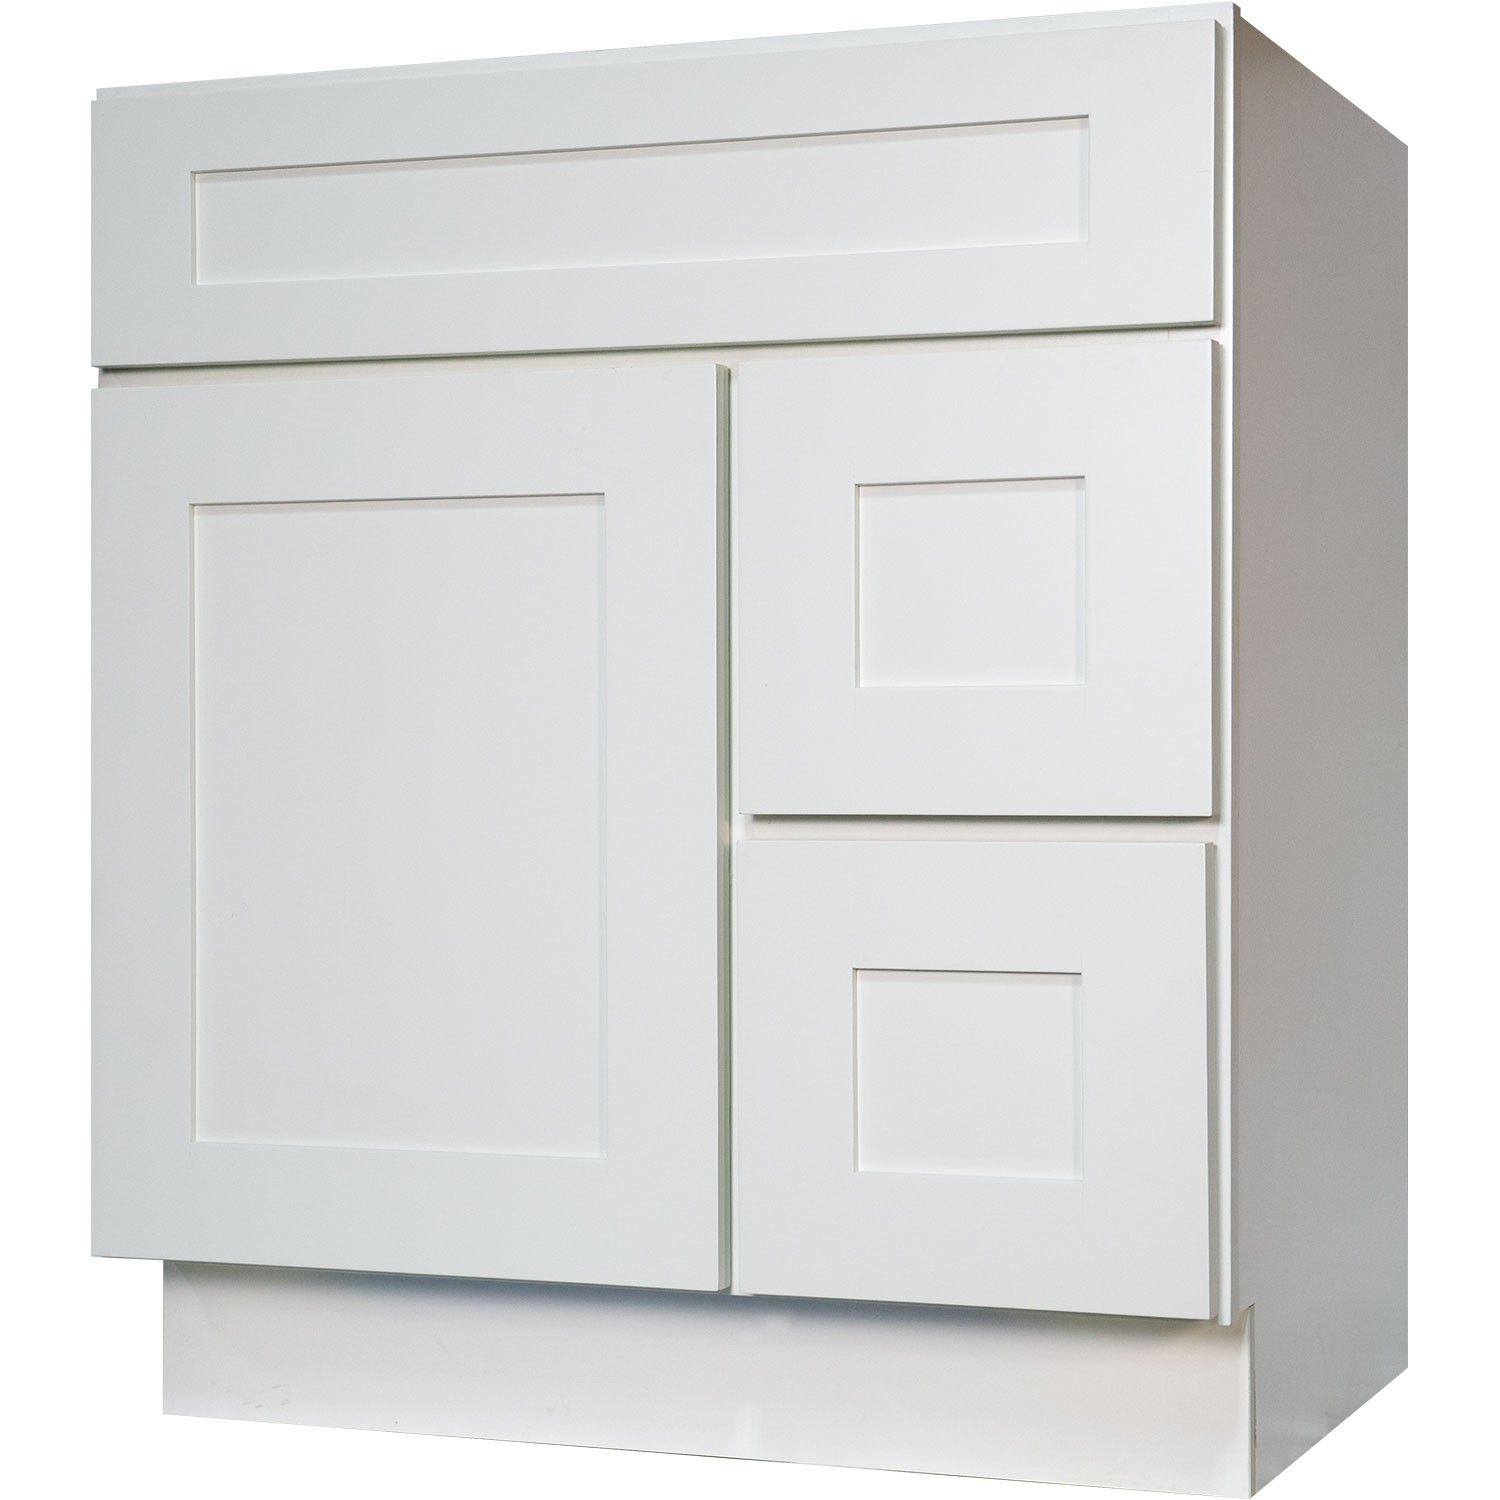 Bathroom Vanity 30 X 21 30 inch bathroom vanity single sink cabinet in white shaker with